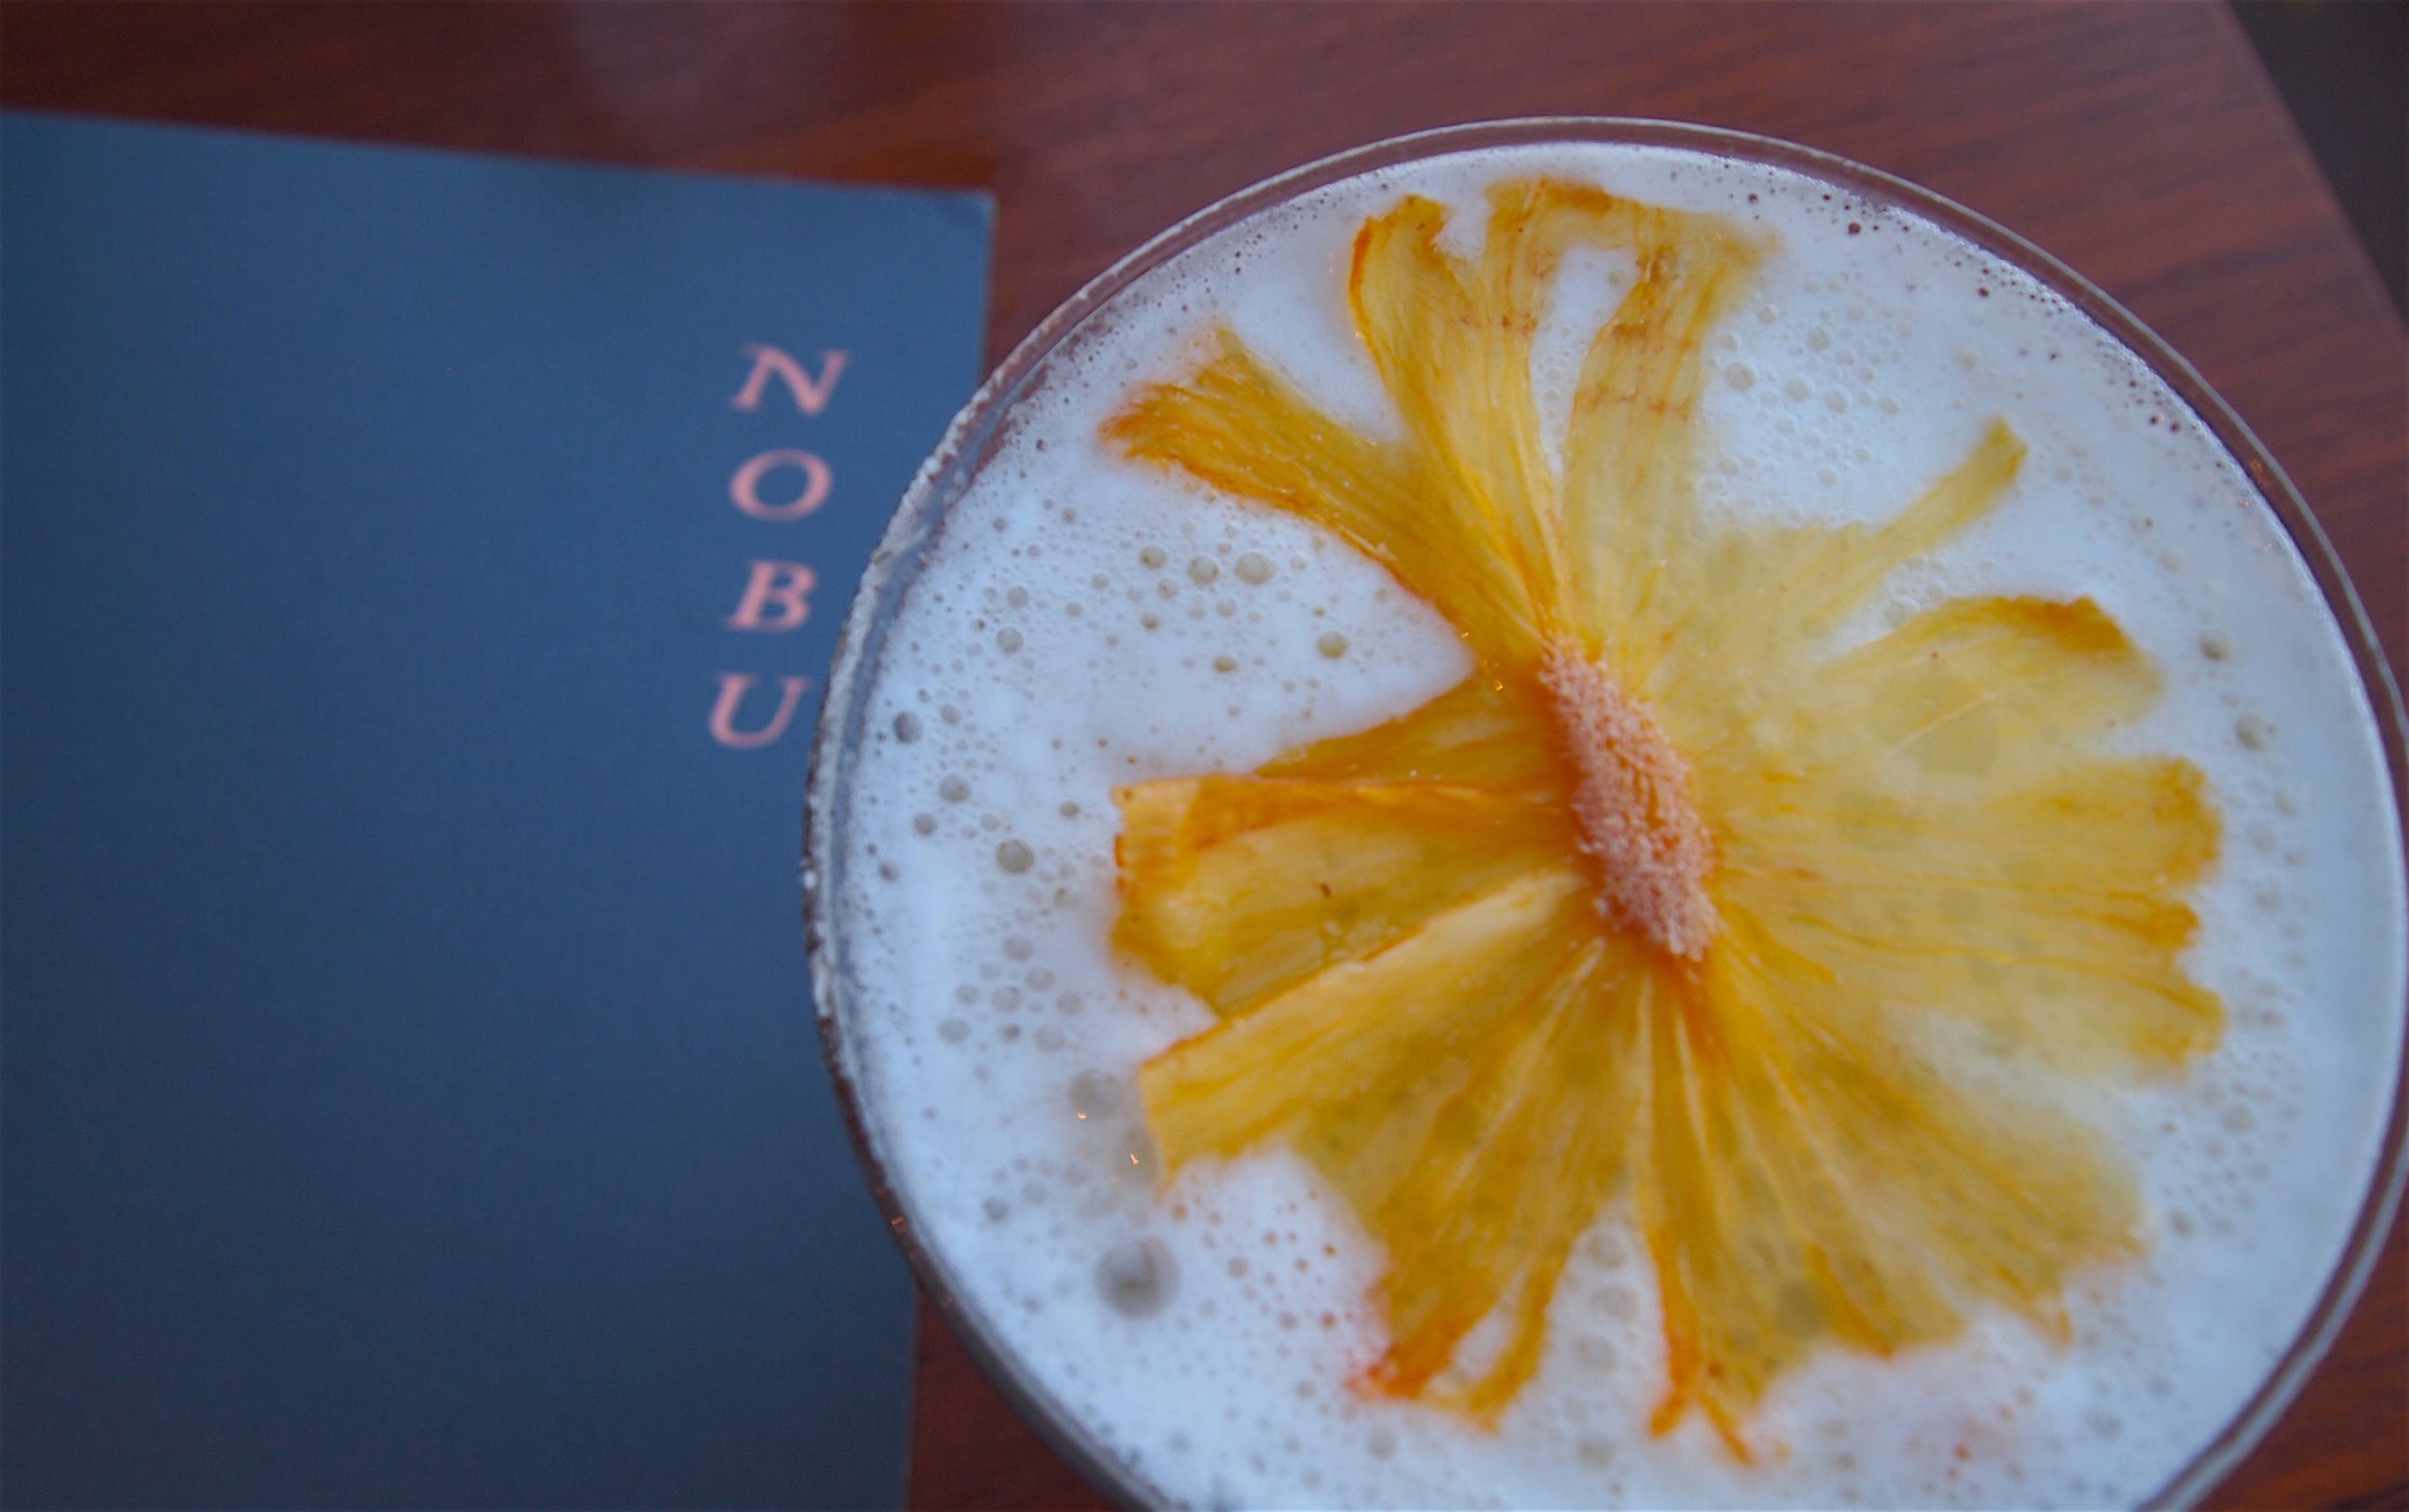 Lanai: Dining at NOBU Lanai, the only NOBU in the world to source greens from its own onsite garden.